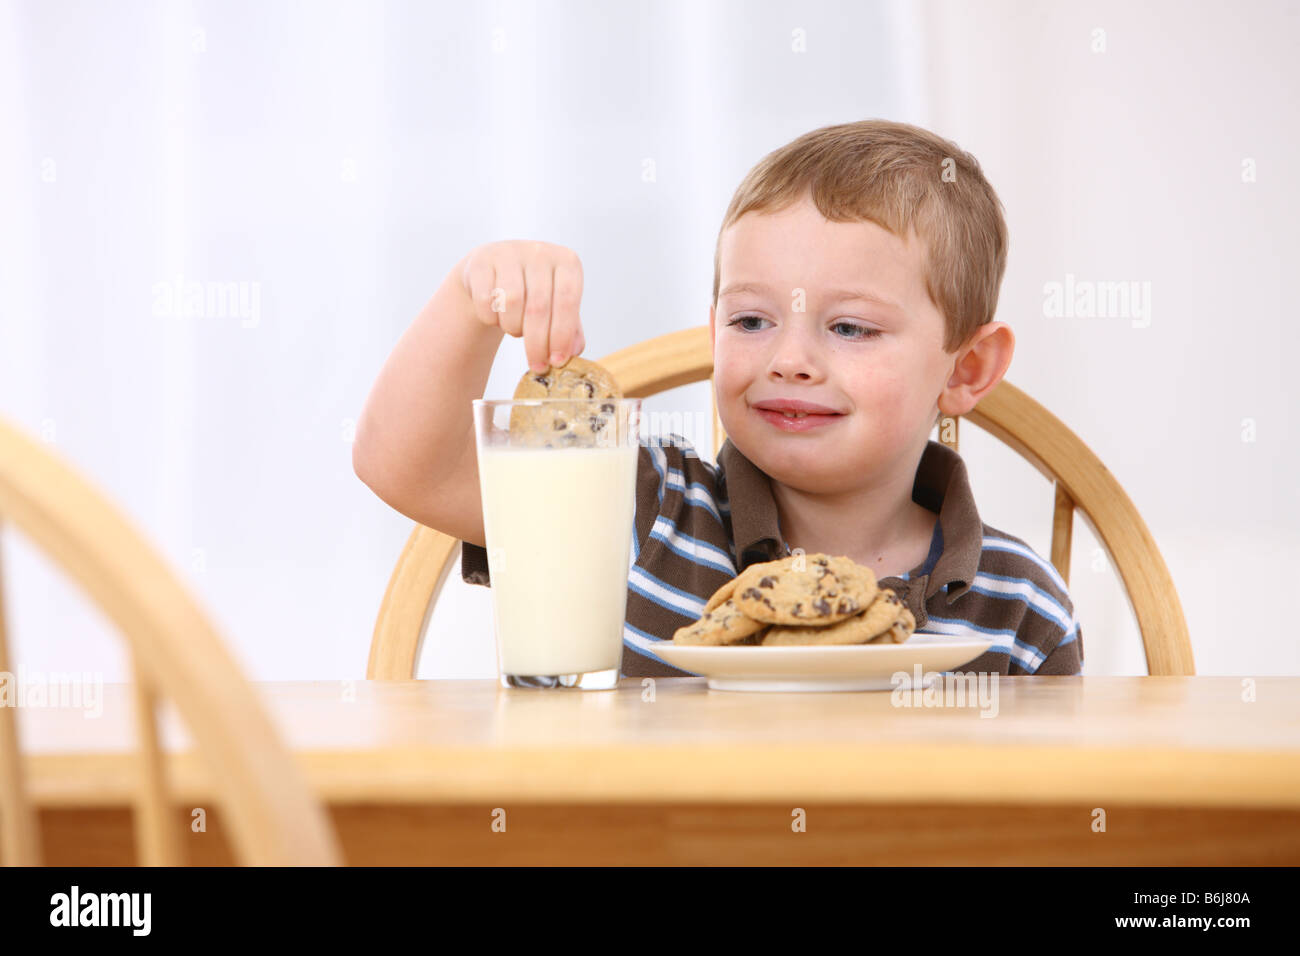 Young boy dipping cookie in glass of milk - Stock Image